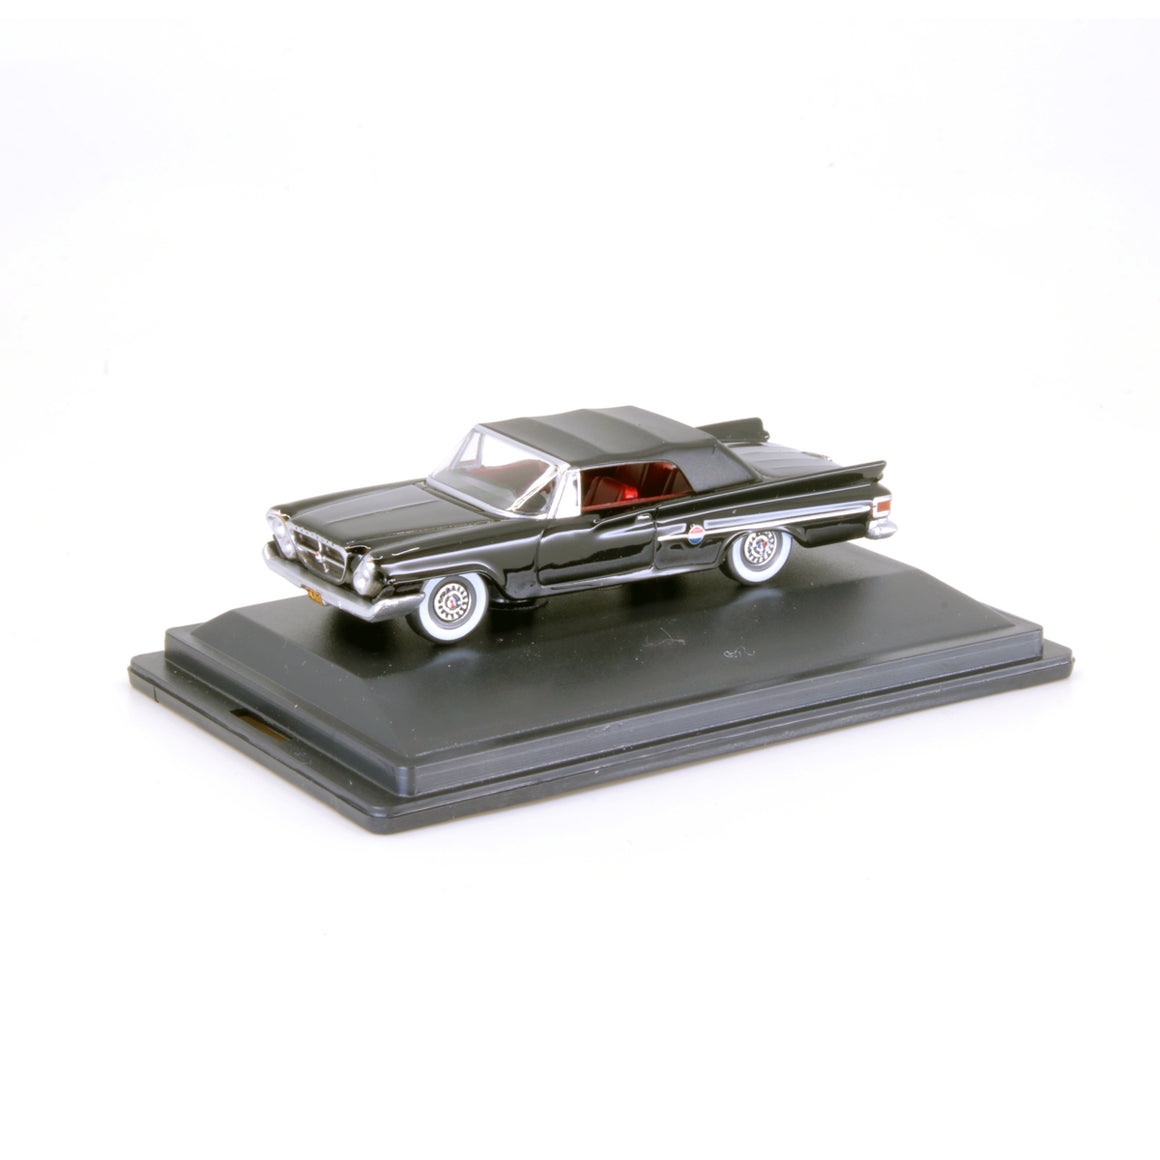 HO Scale: 1961 Chrysler 300 Convertible - Black